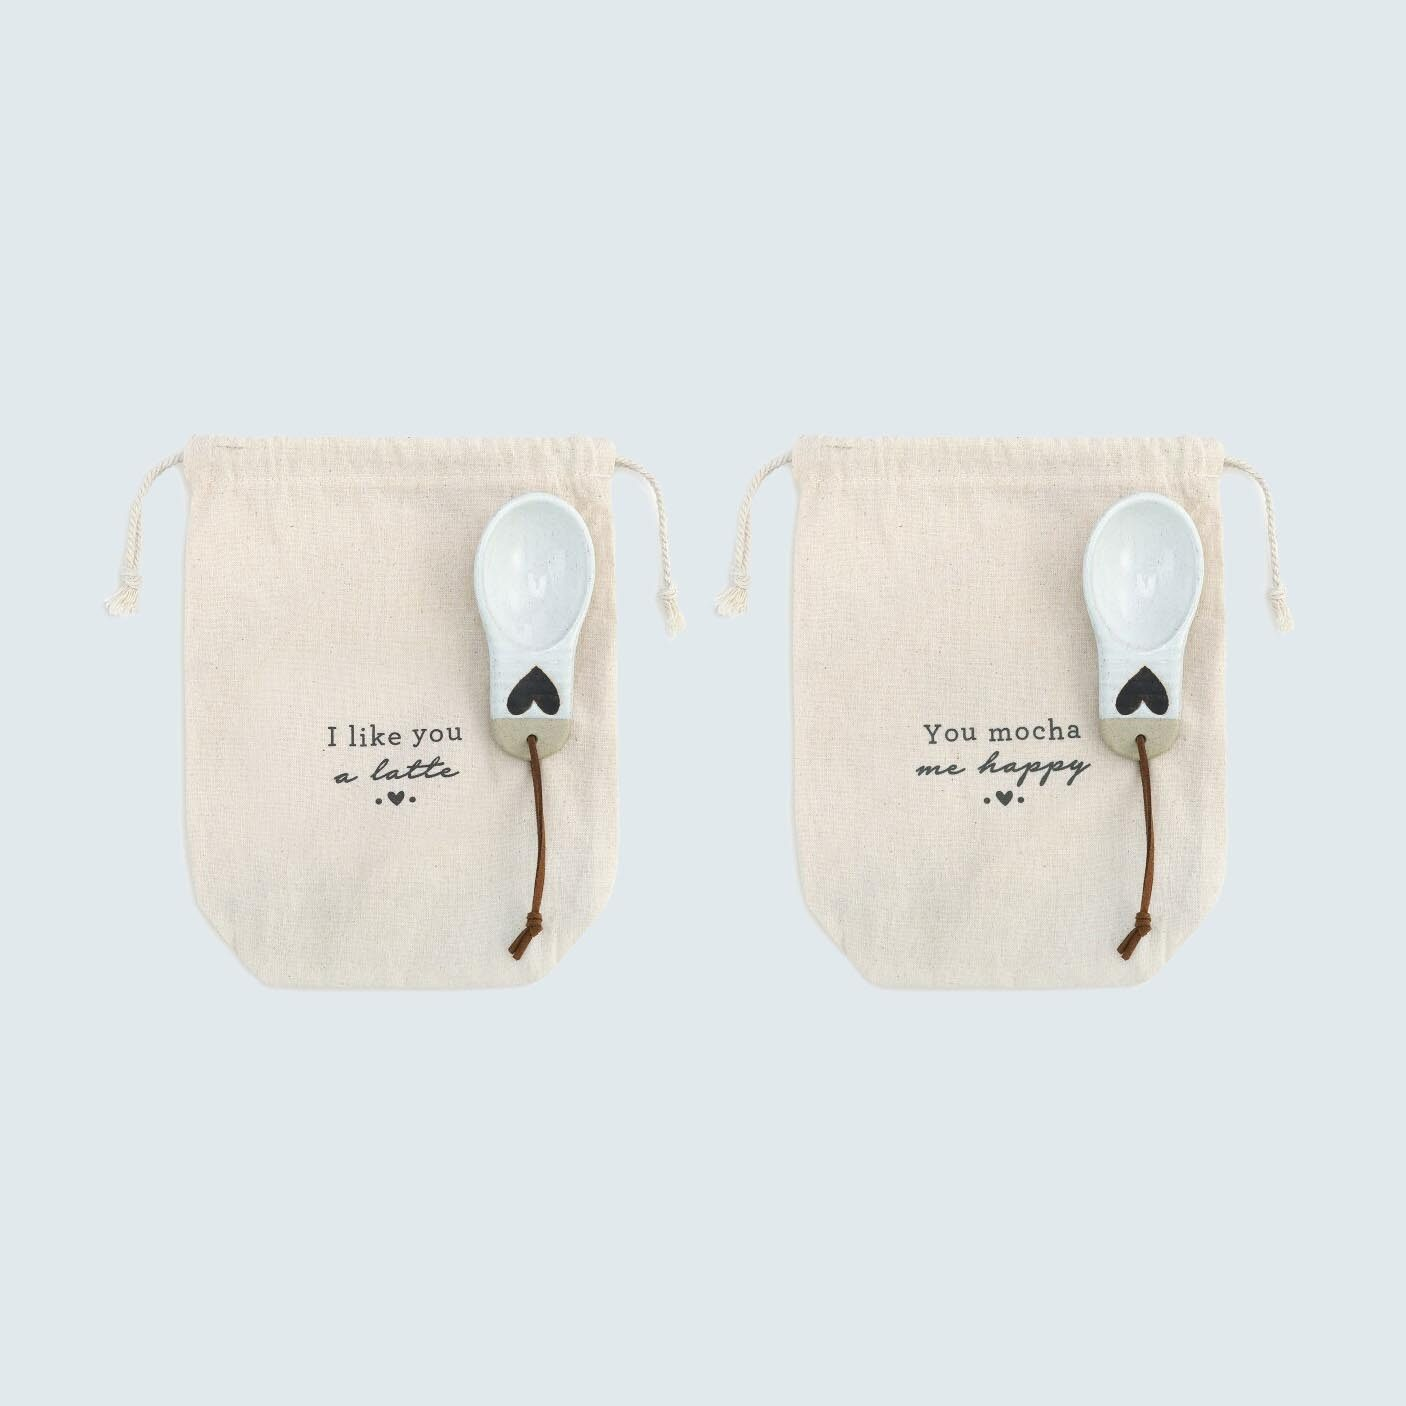 For Scooping: Heart Coffee Bag with Scoop, set of 2